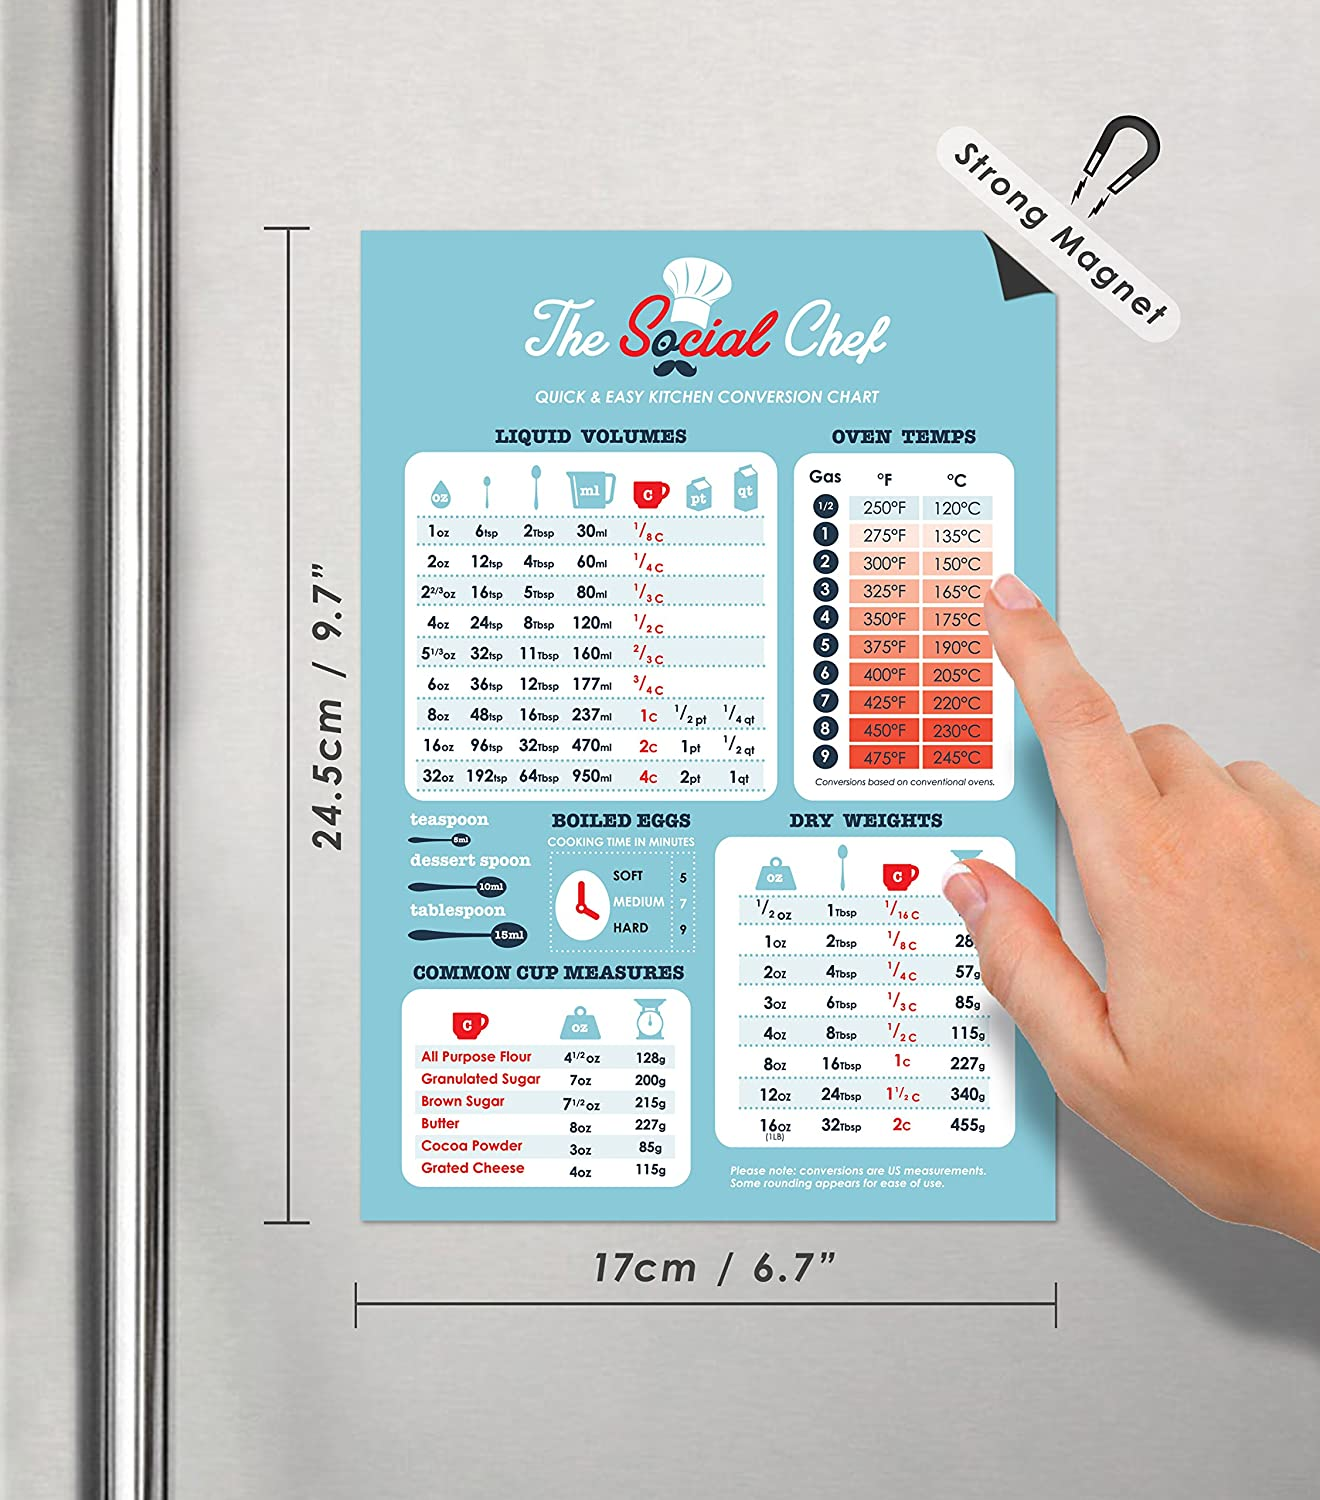 Amazon magnetic kitchen conversion chart by the social chef amazon magnetic kitchen conversion chart by the social chef kitchen dining nvjuhfo Choice Image